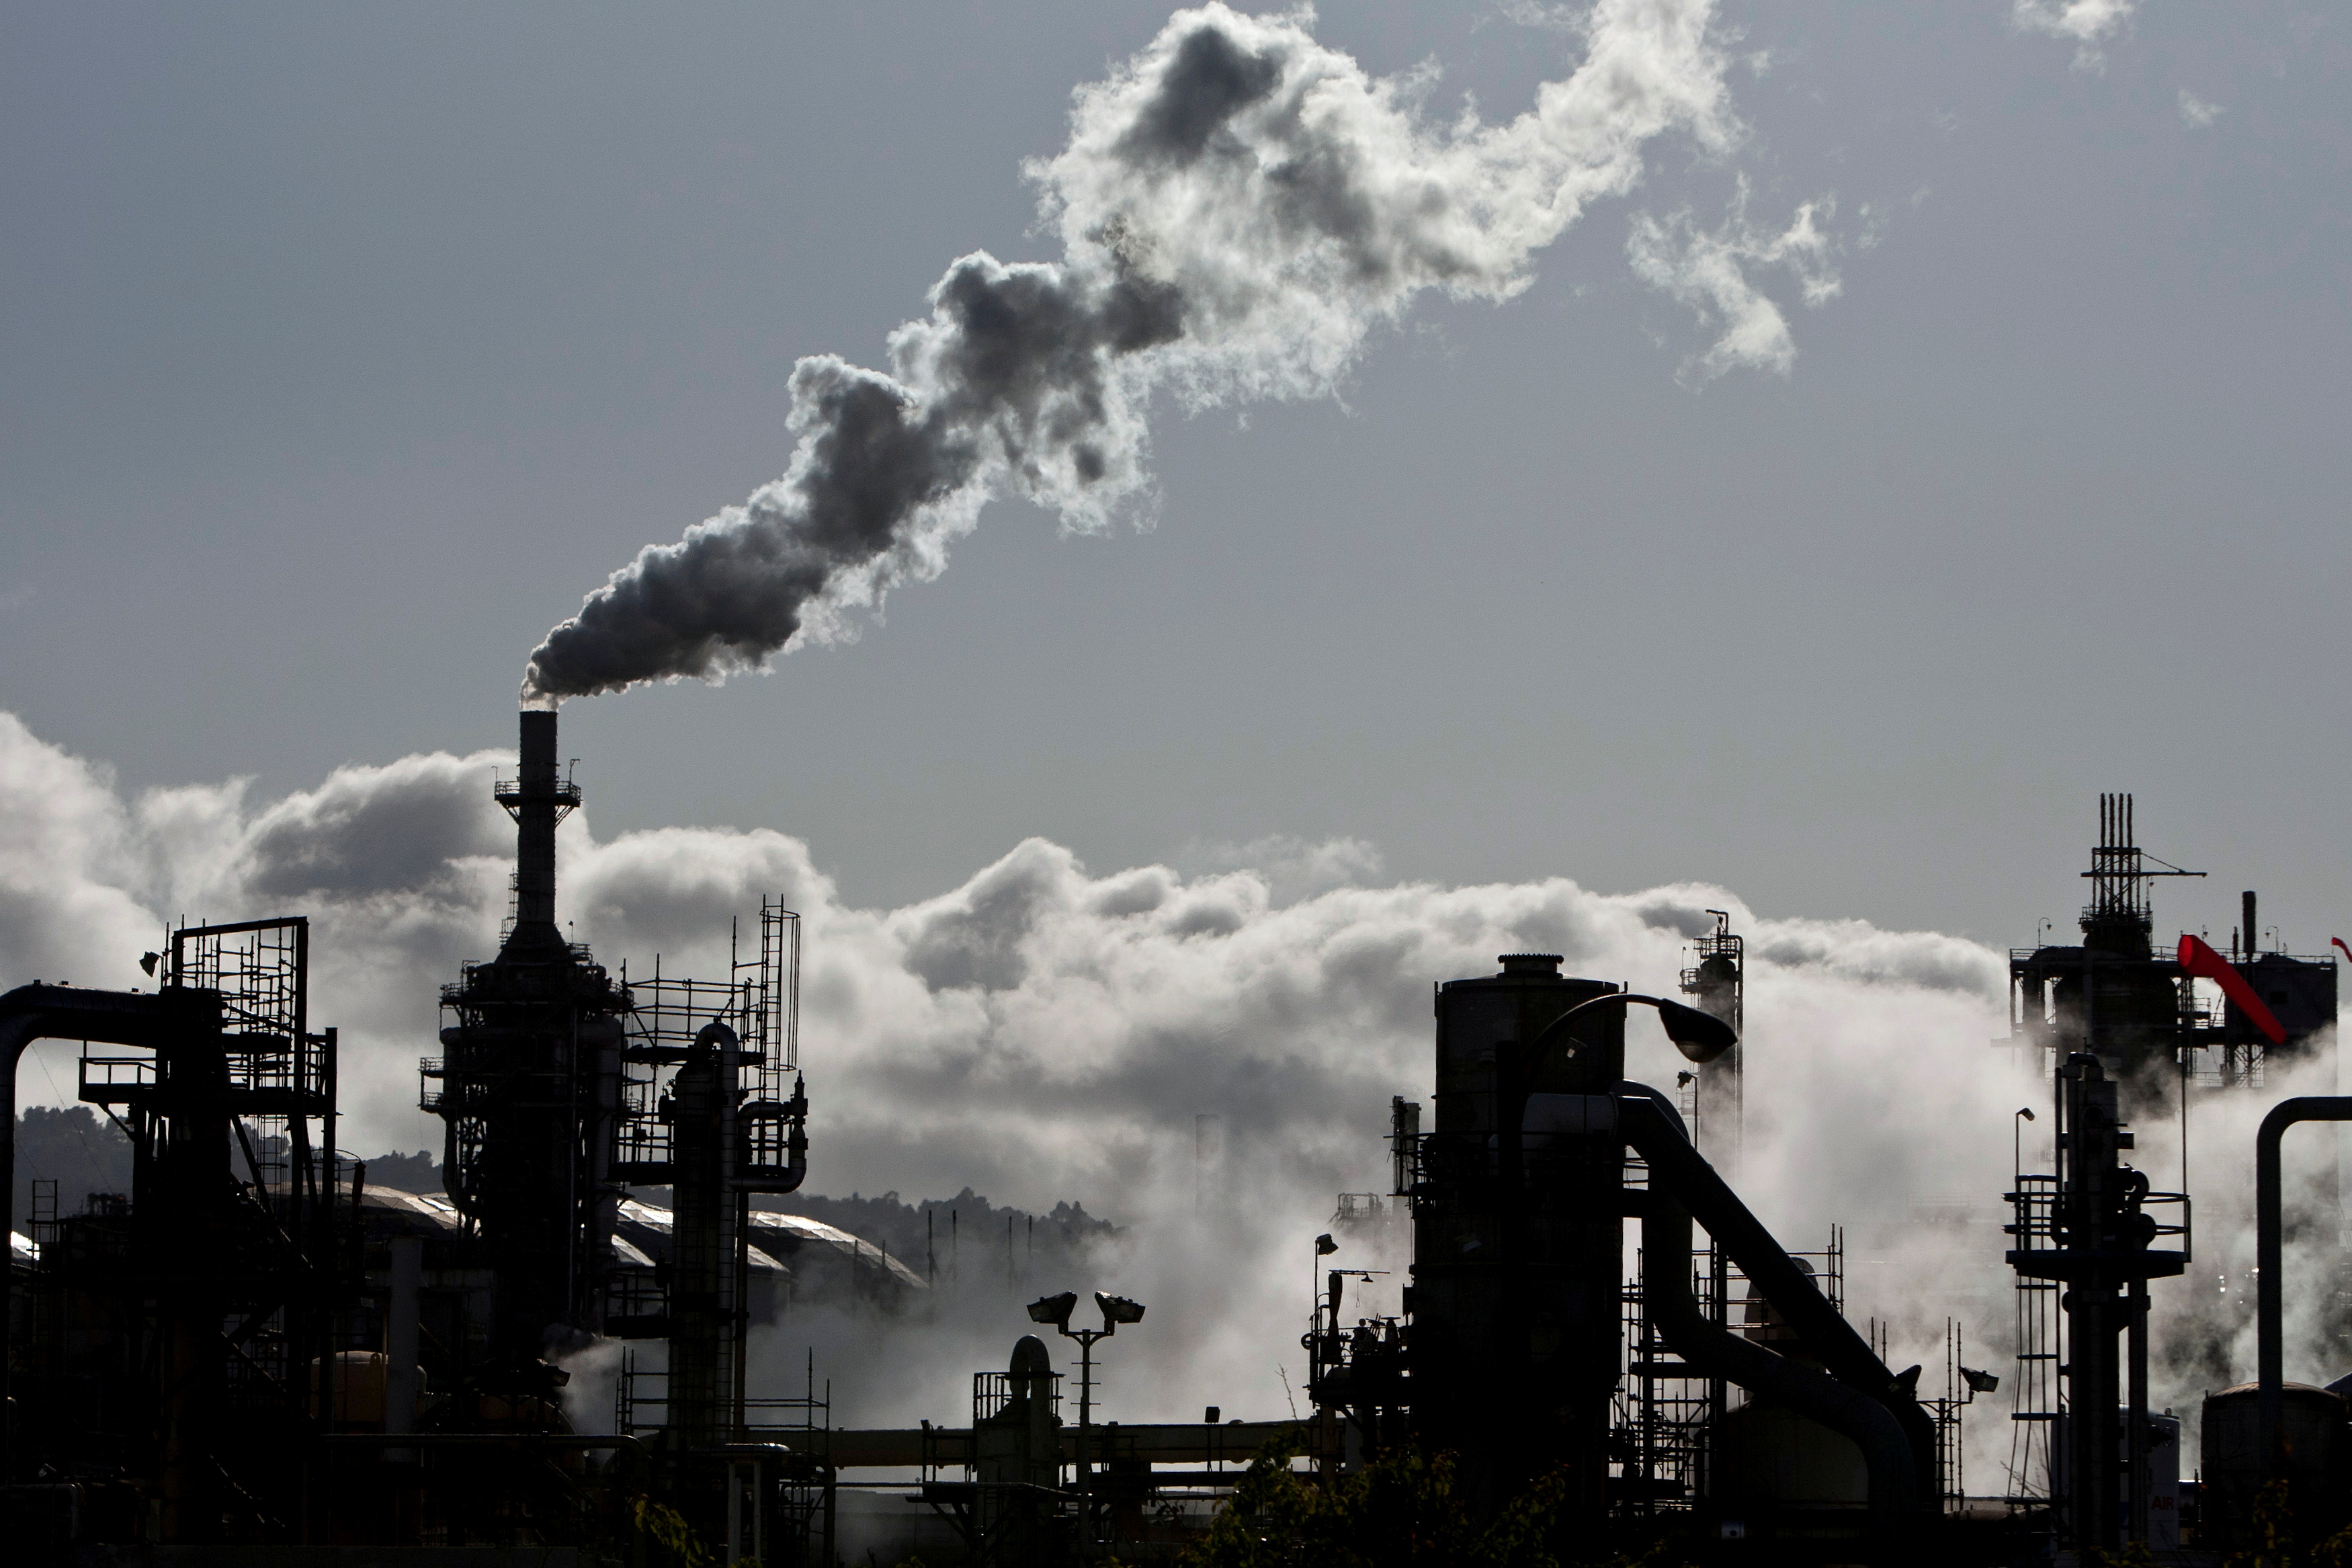 Vapor is released into the sky at a refinery in Wilmington, California March 24, 2012. REUTERS/Bret Hartman